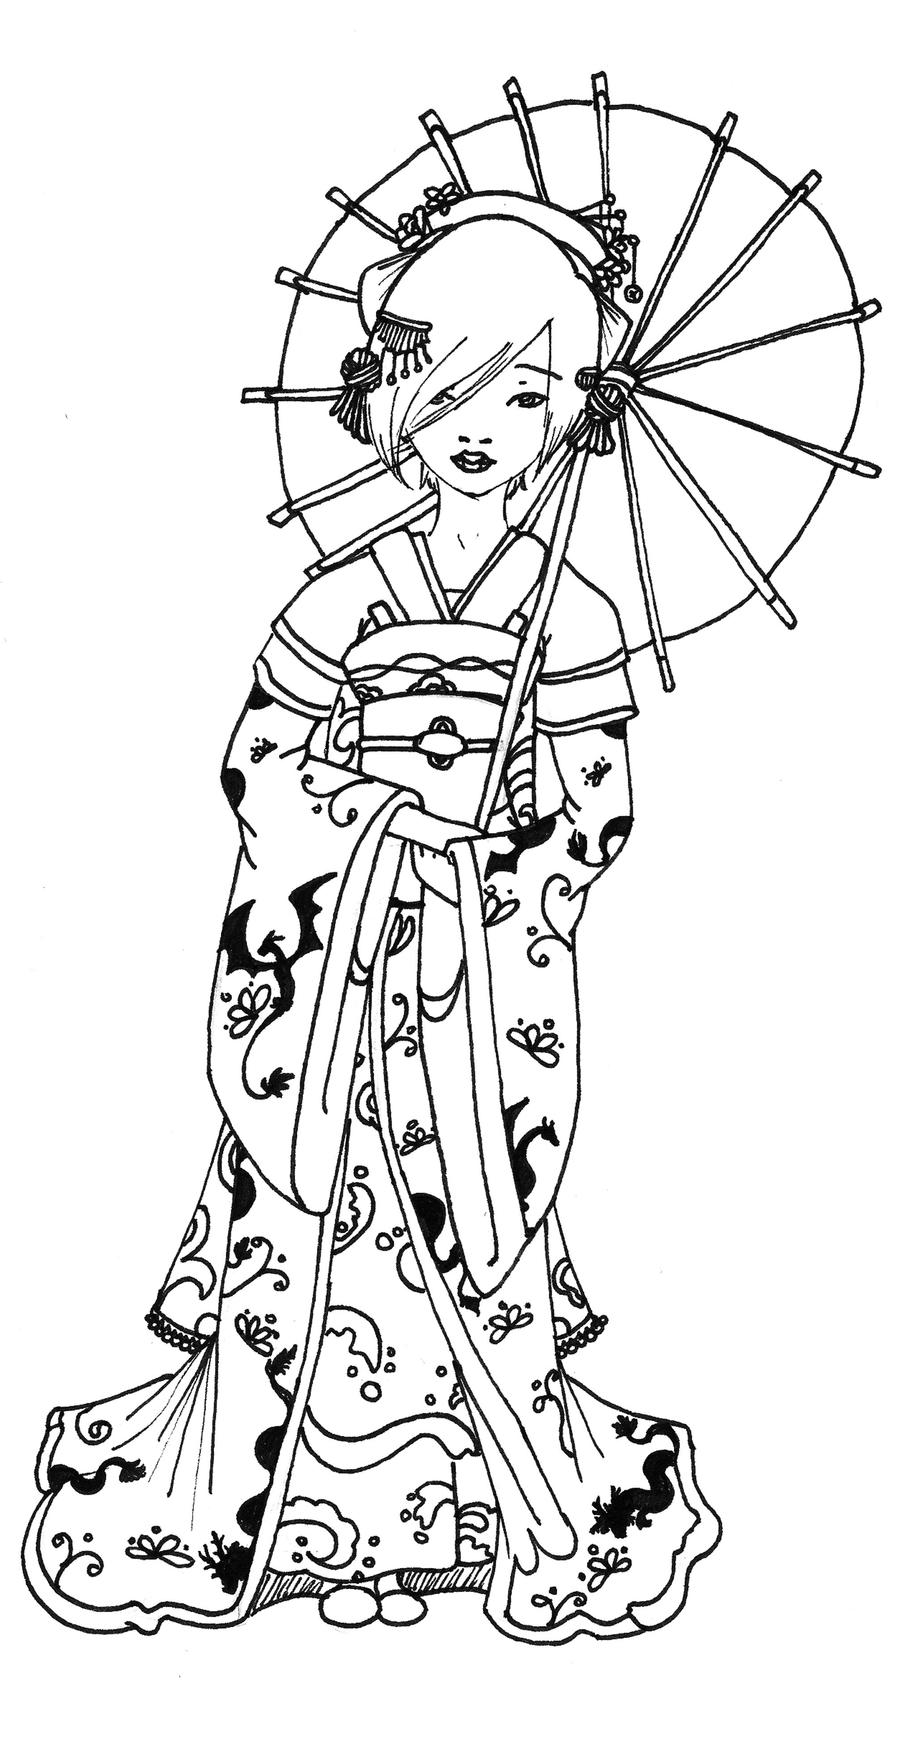 Coloring Page. Coloring Book. Anti Stress Colouring Picture With ...   1744x900